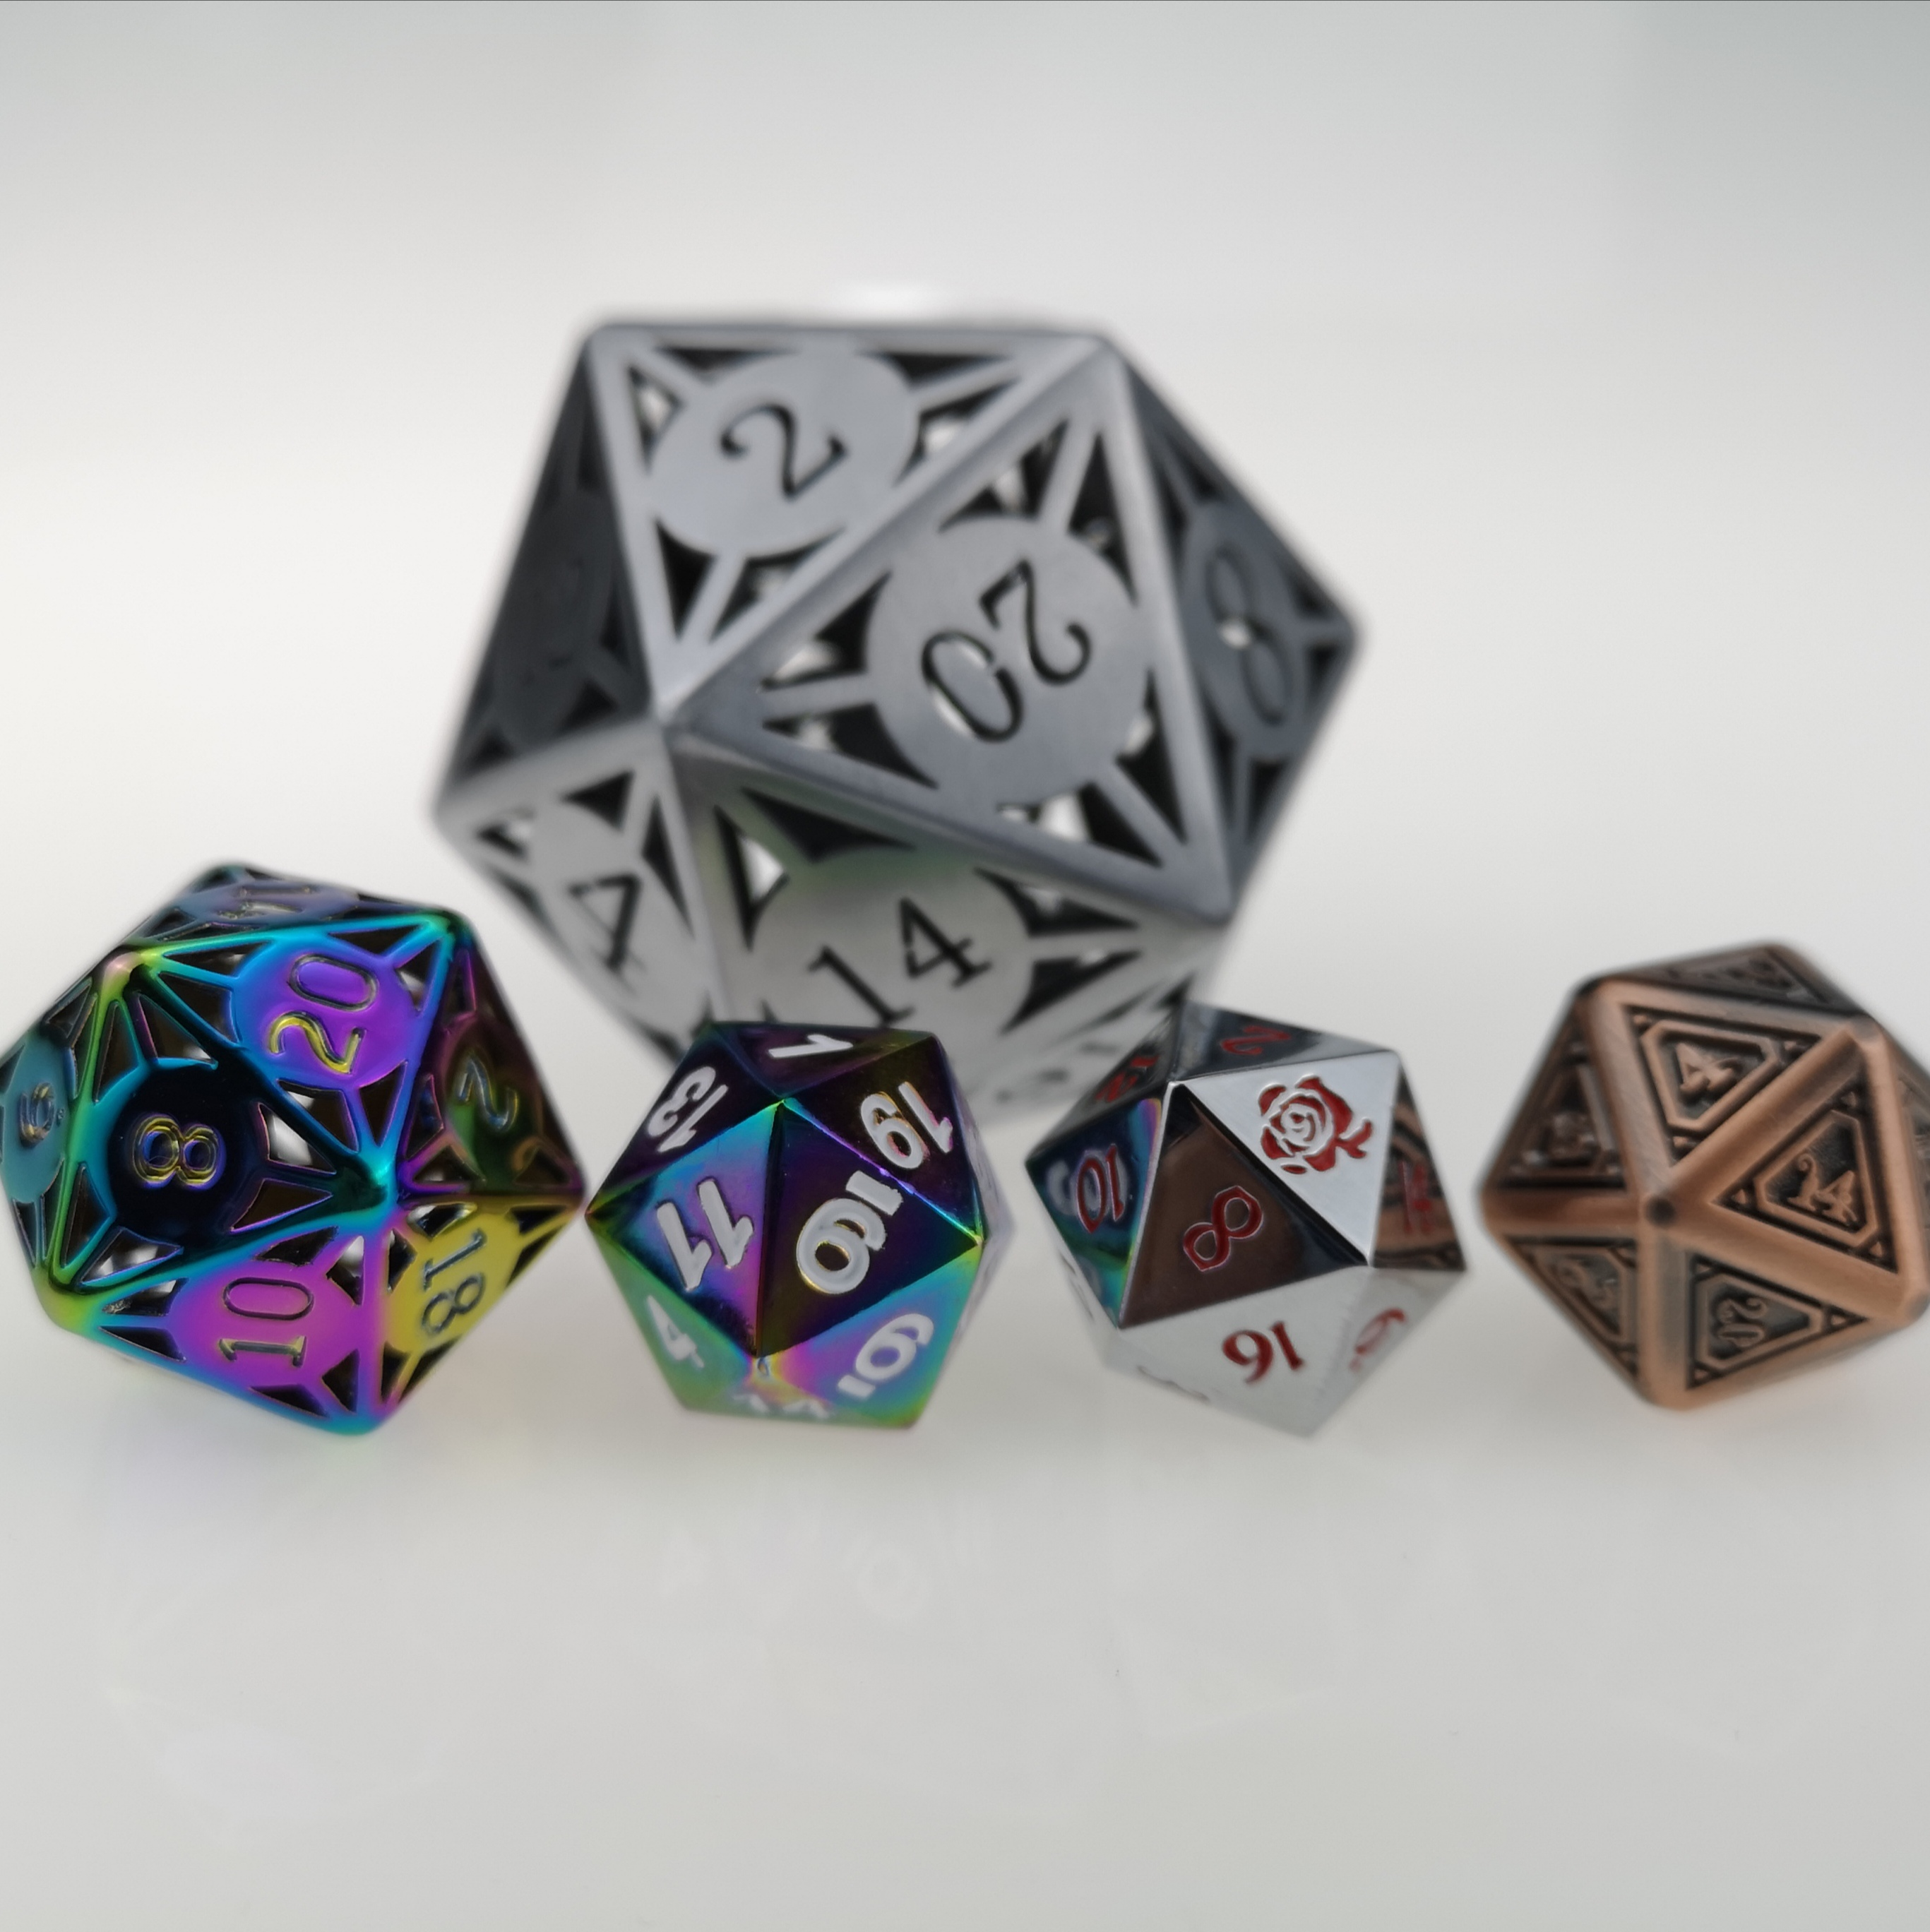 Rollooo 20 Sided Dice Collection Single Metal D20 Rainbow Hollow Jumbo Custom Logo Special Font Die For RPG DND MTG Games